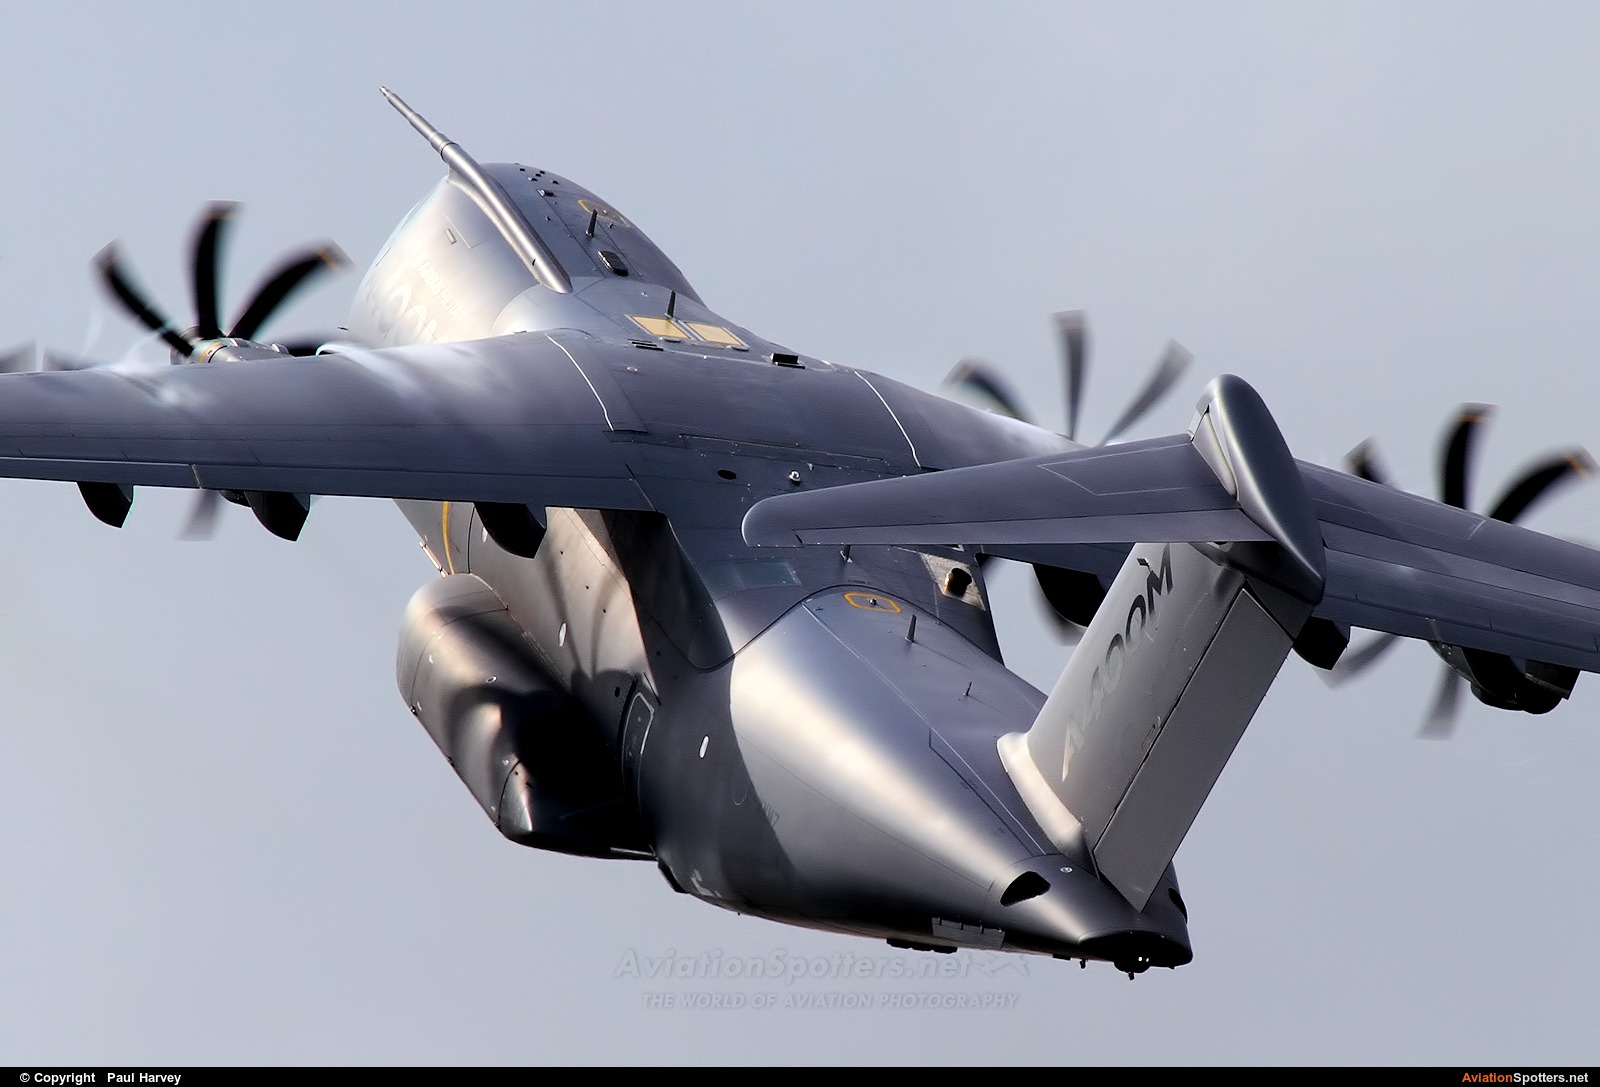 Airbus Military  -  A400M  (F-WWMZ) By Paul Harvey (Paultojo)